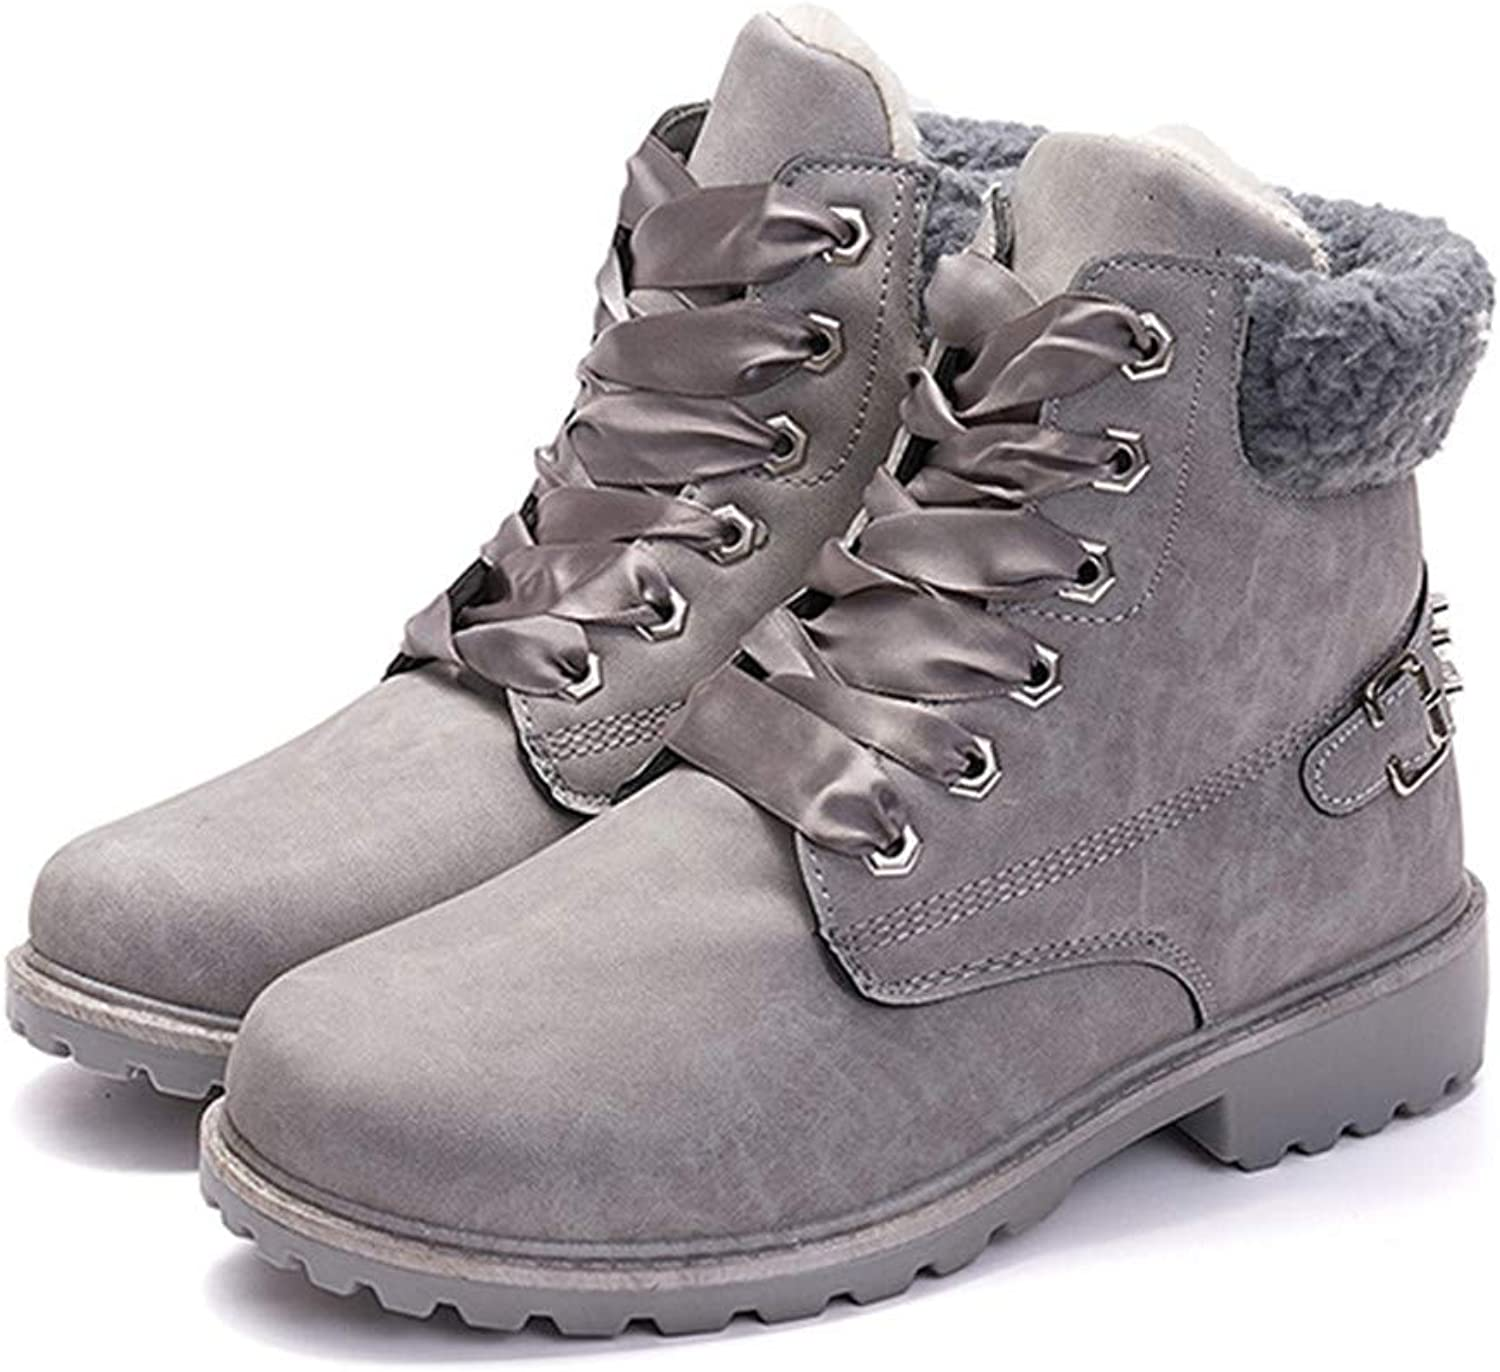 R-Anketsy Women Boots Lace Up Casual Ankle Boots Round Toe PU shoes Winter Warm Snow Boots